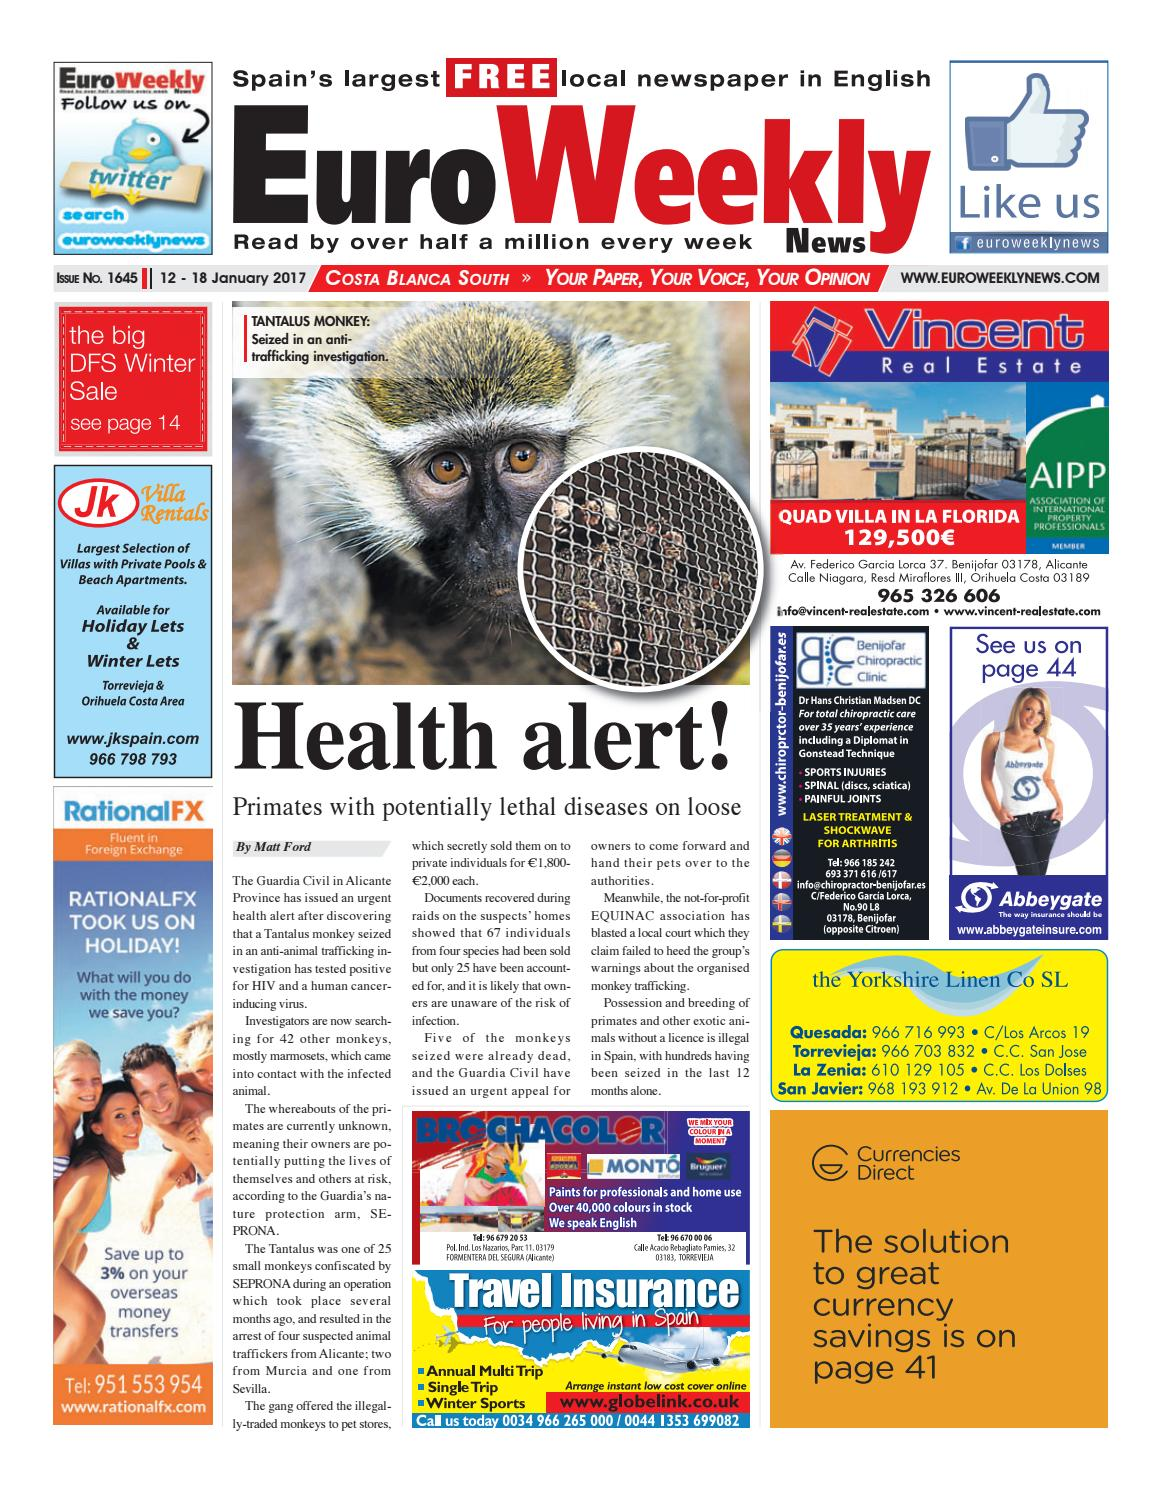 Euro weekly news costa blanca south 12 18 january 2017 issue euro weekly news costa blanca south 12 18 january 2017 issue 1645 by euro weekly news media sa issuu fandeluxe Images